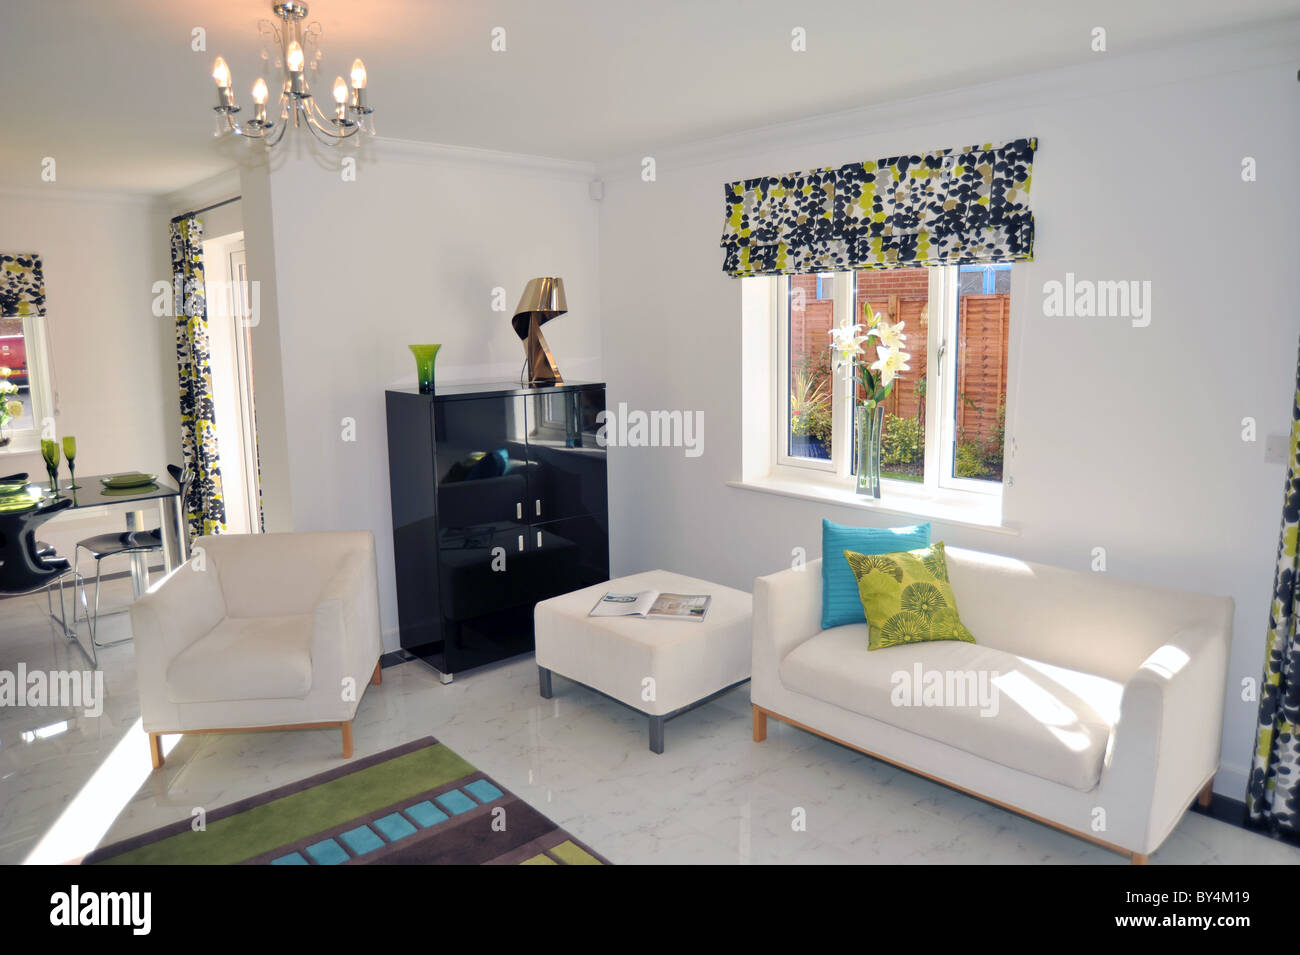 New Show Home Lounge Interior UK Stock Photo Royalty Free Image   Show Homes  Interiors Uk